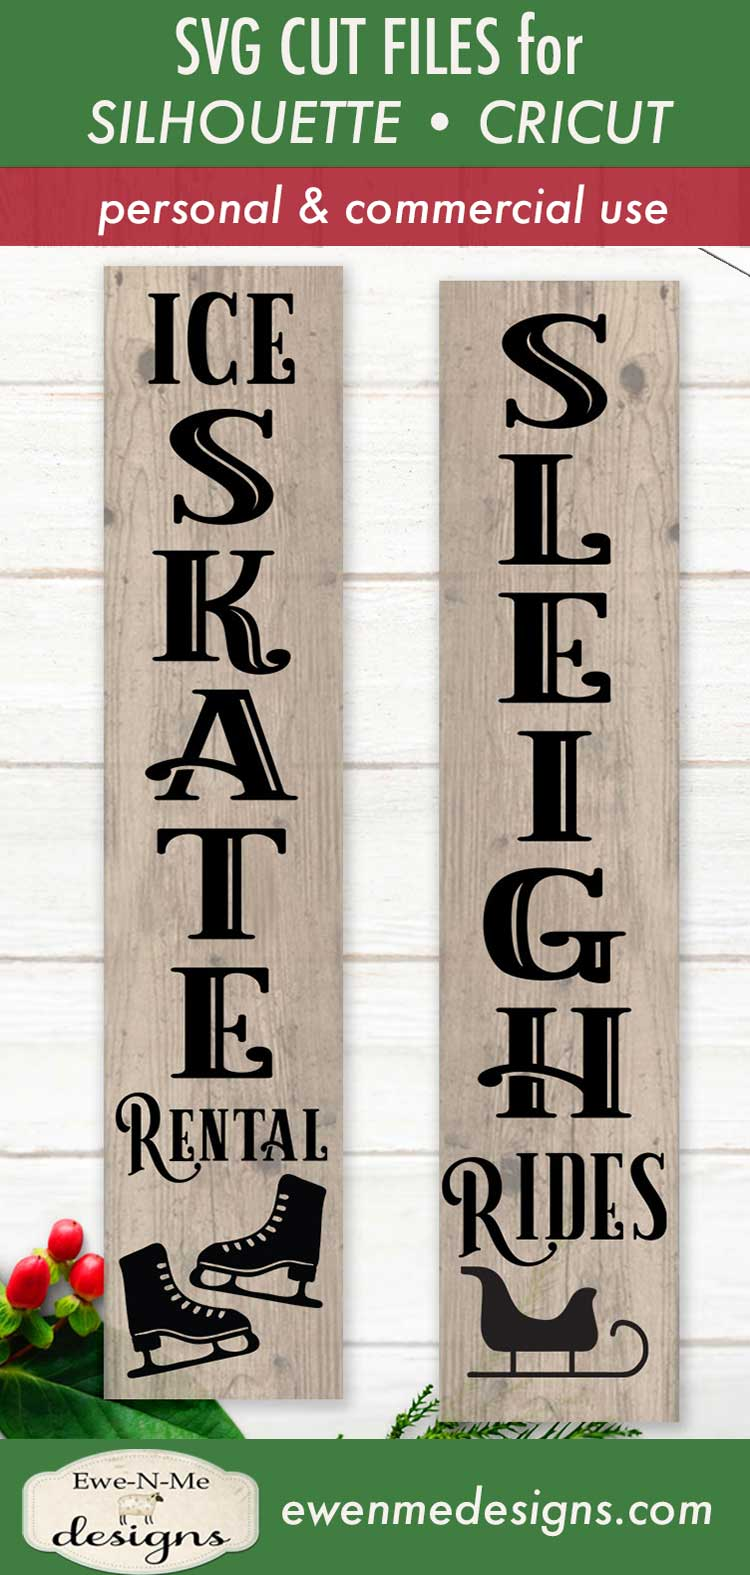 Skate Rental - Sleigh Rides - Christmas - Vertical SVG example image 3